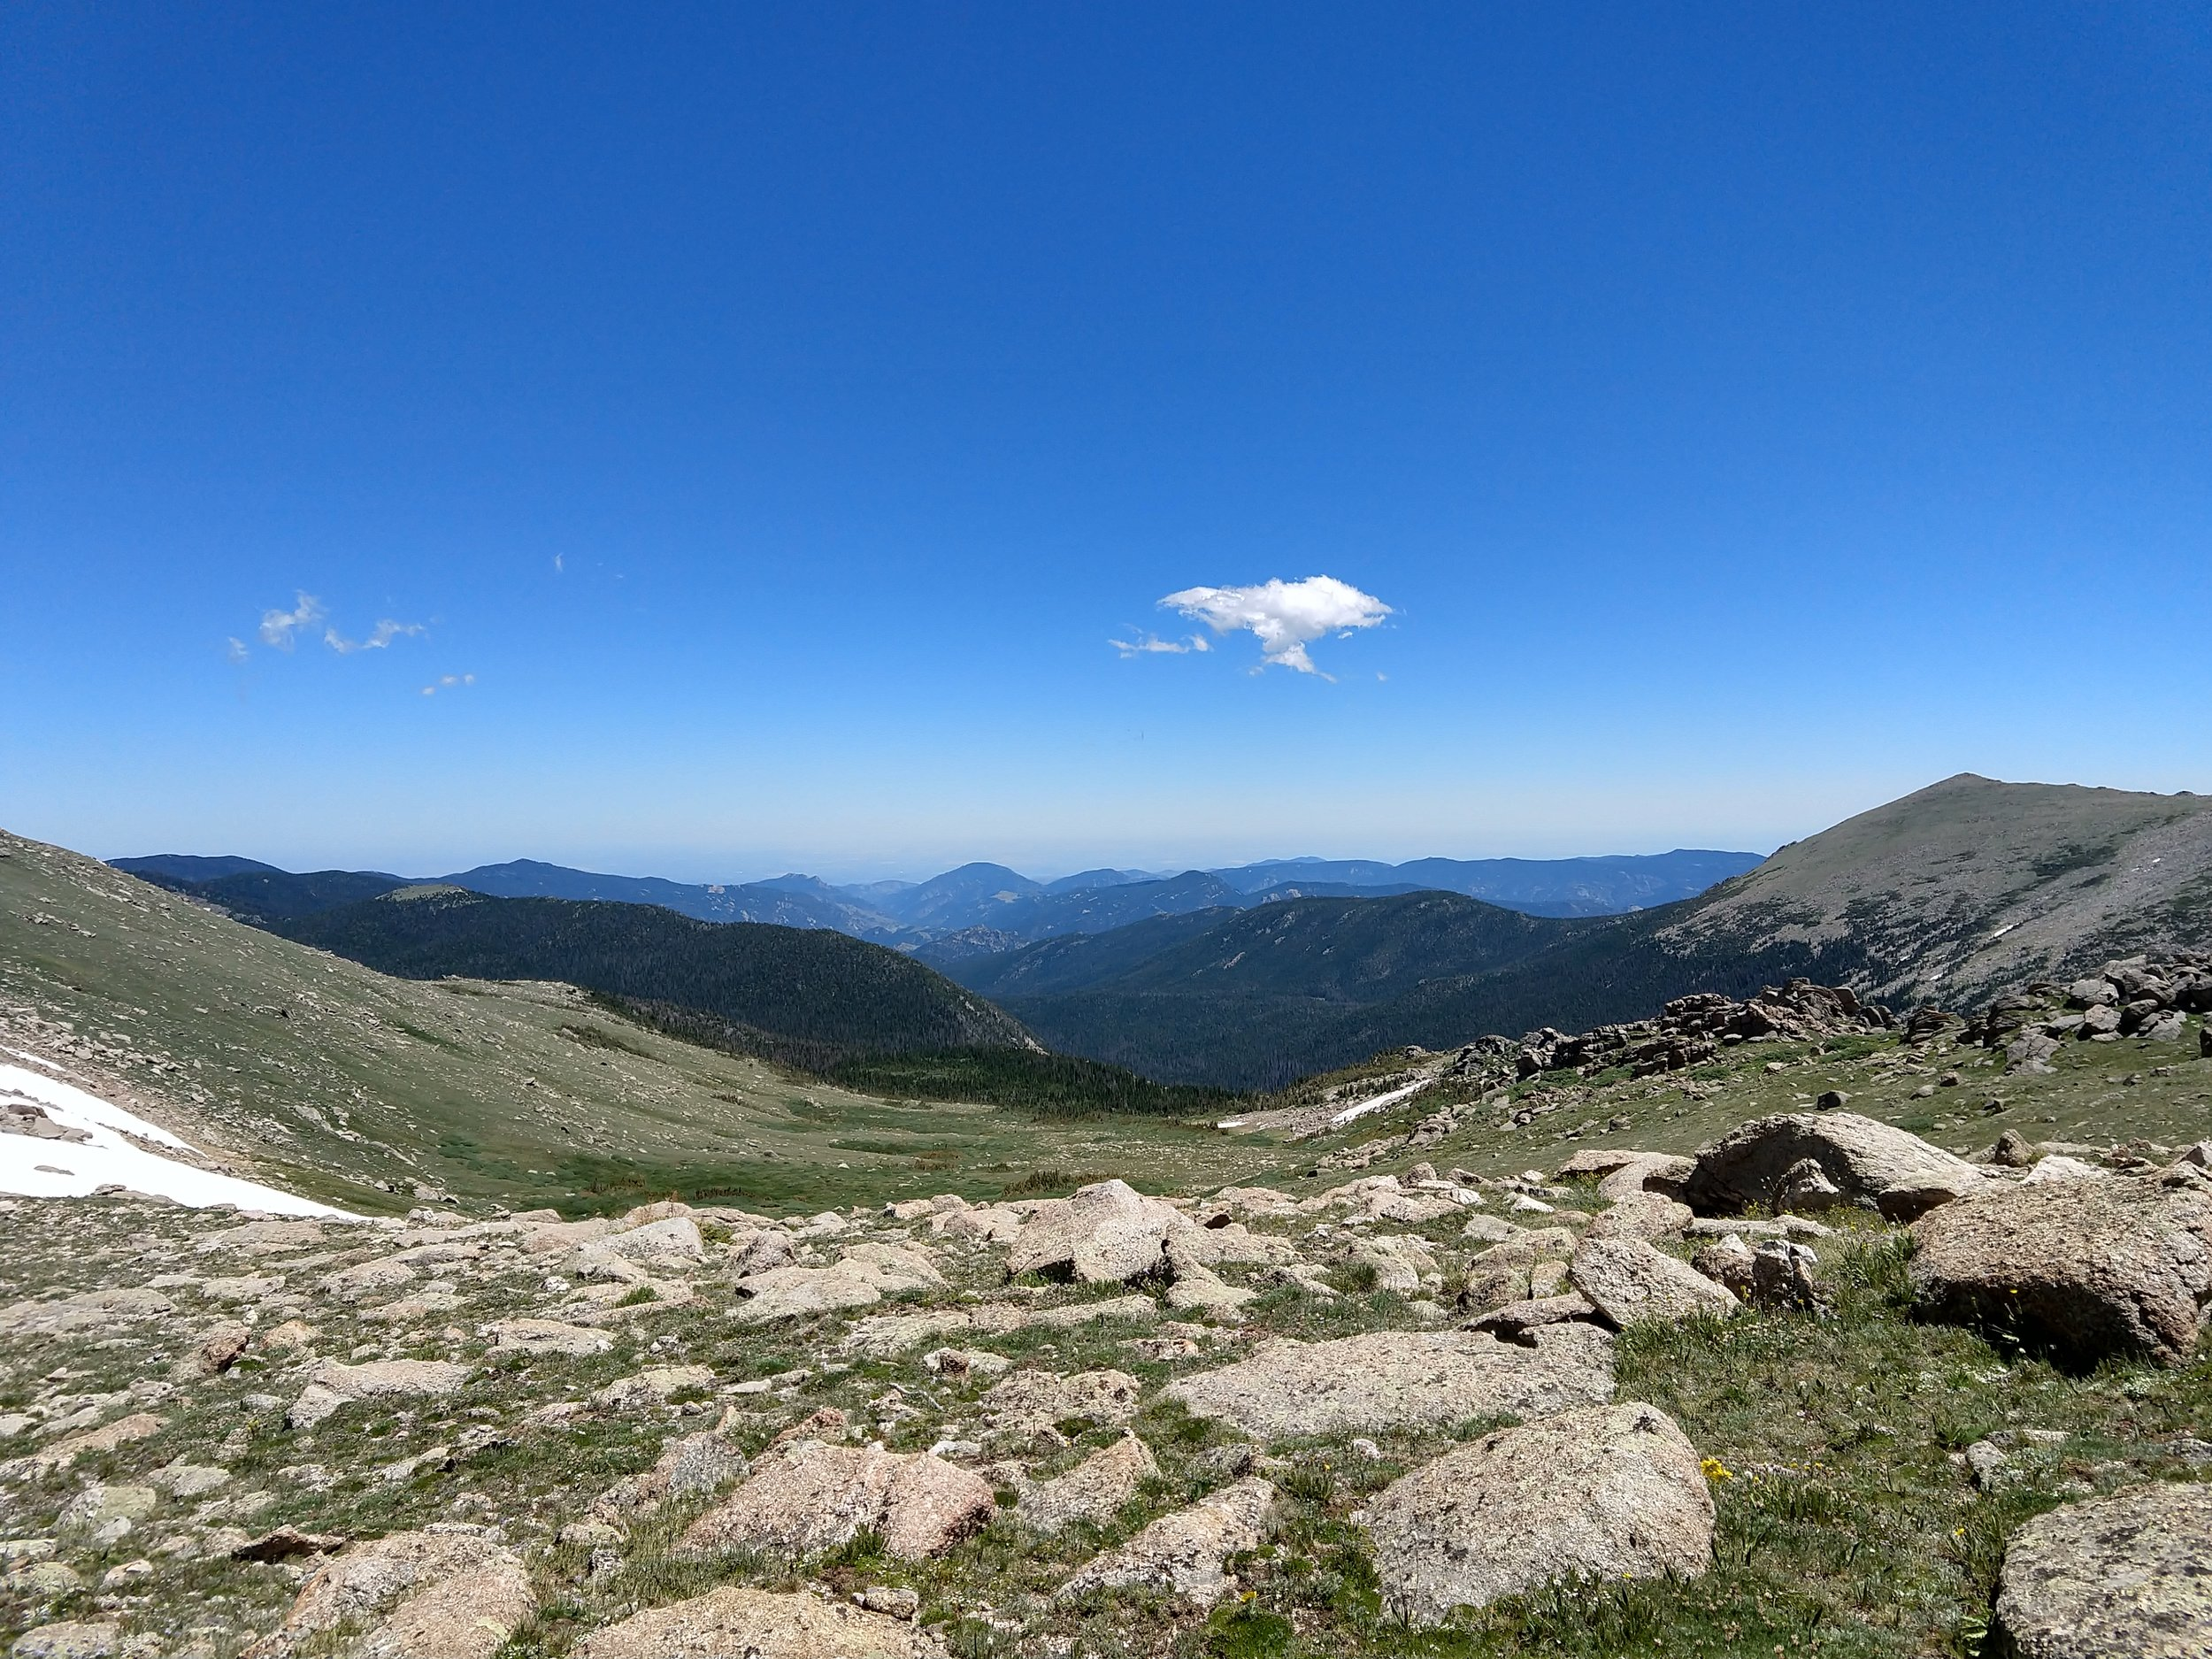 The view from Stormy Peaks Saddle.